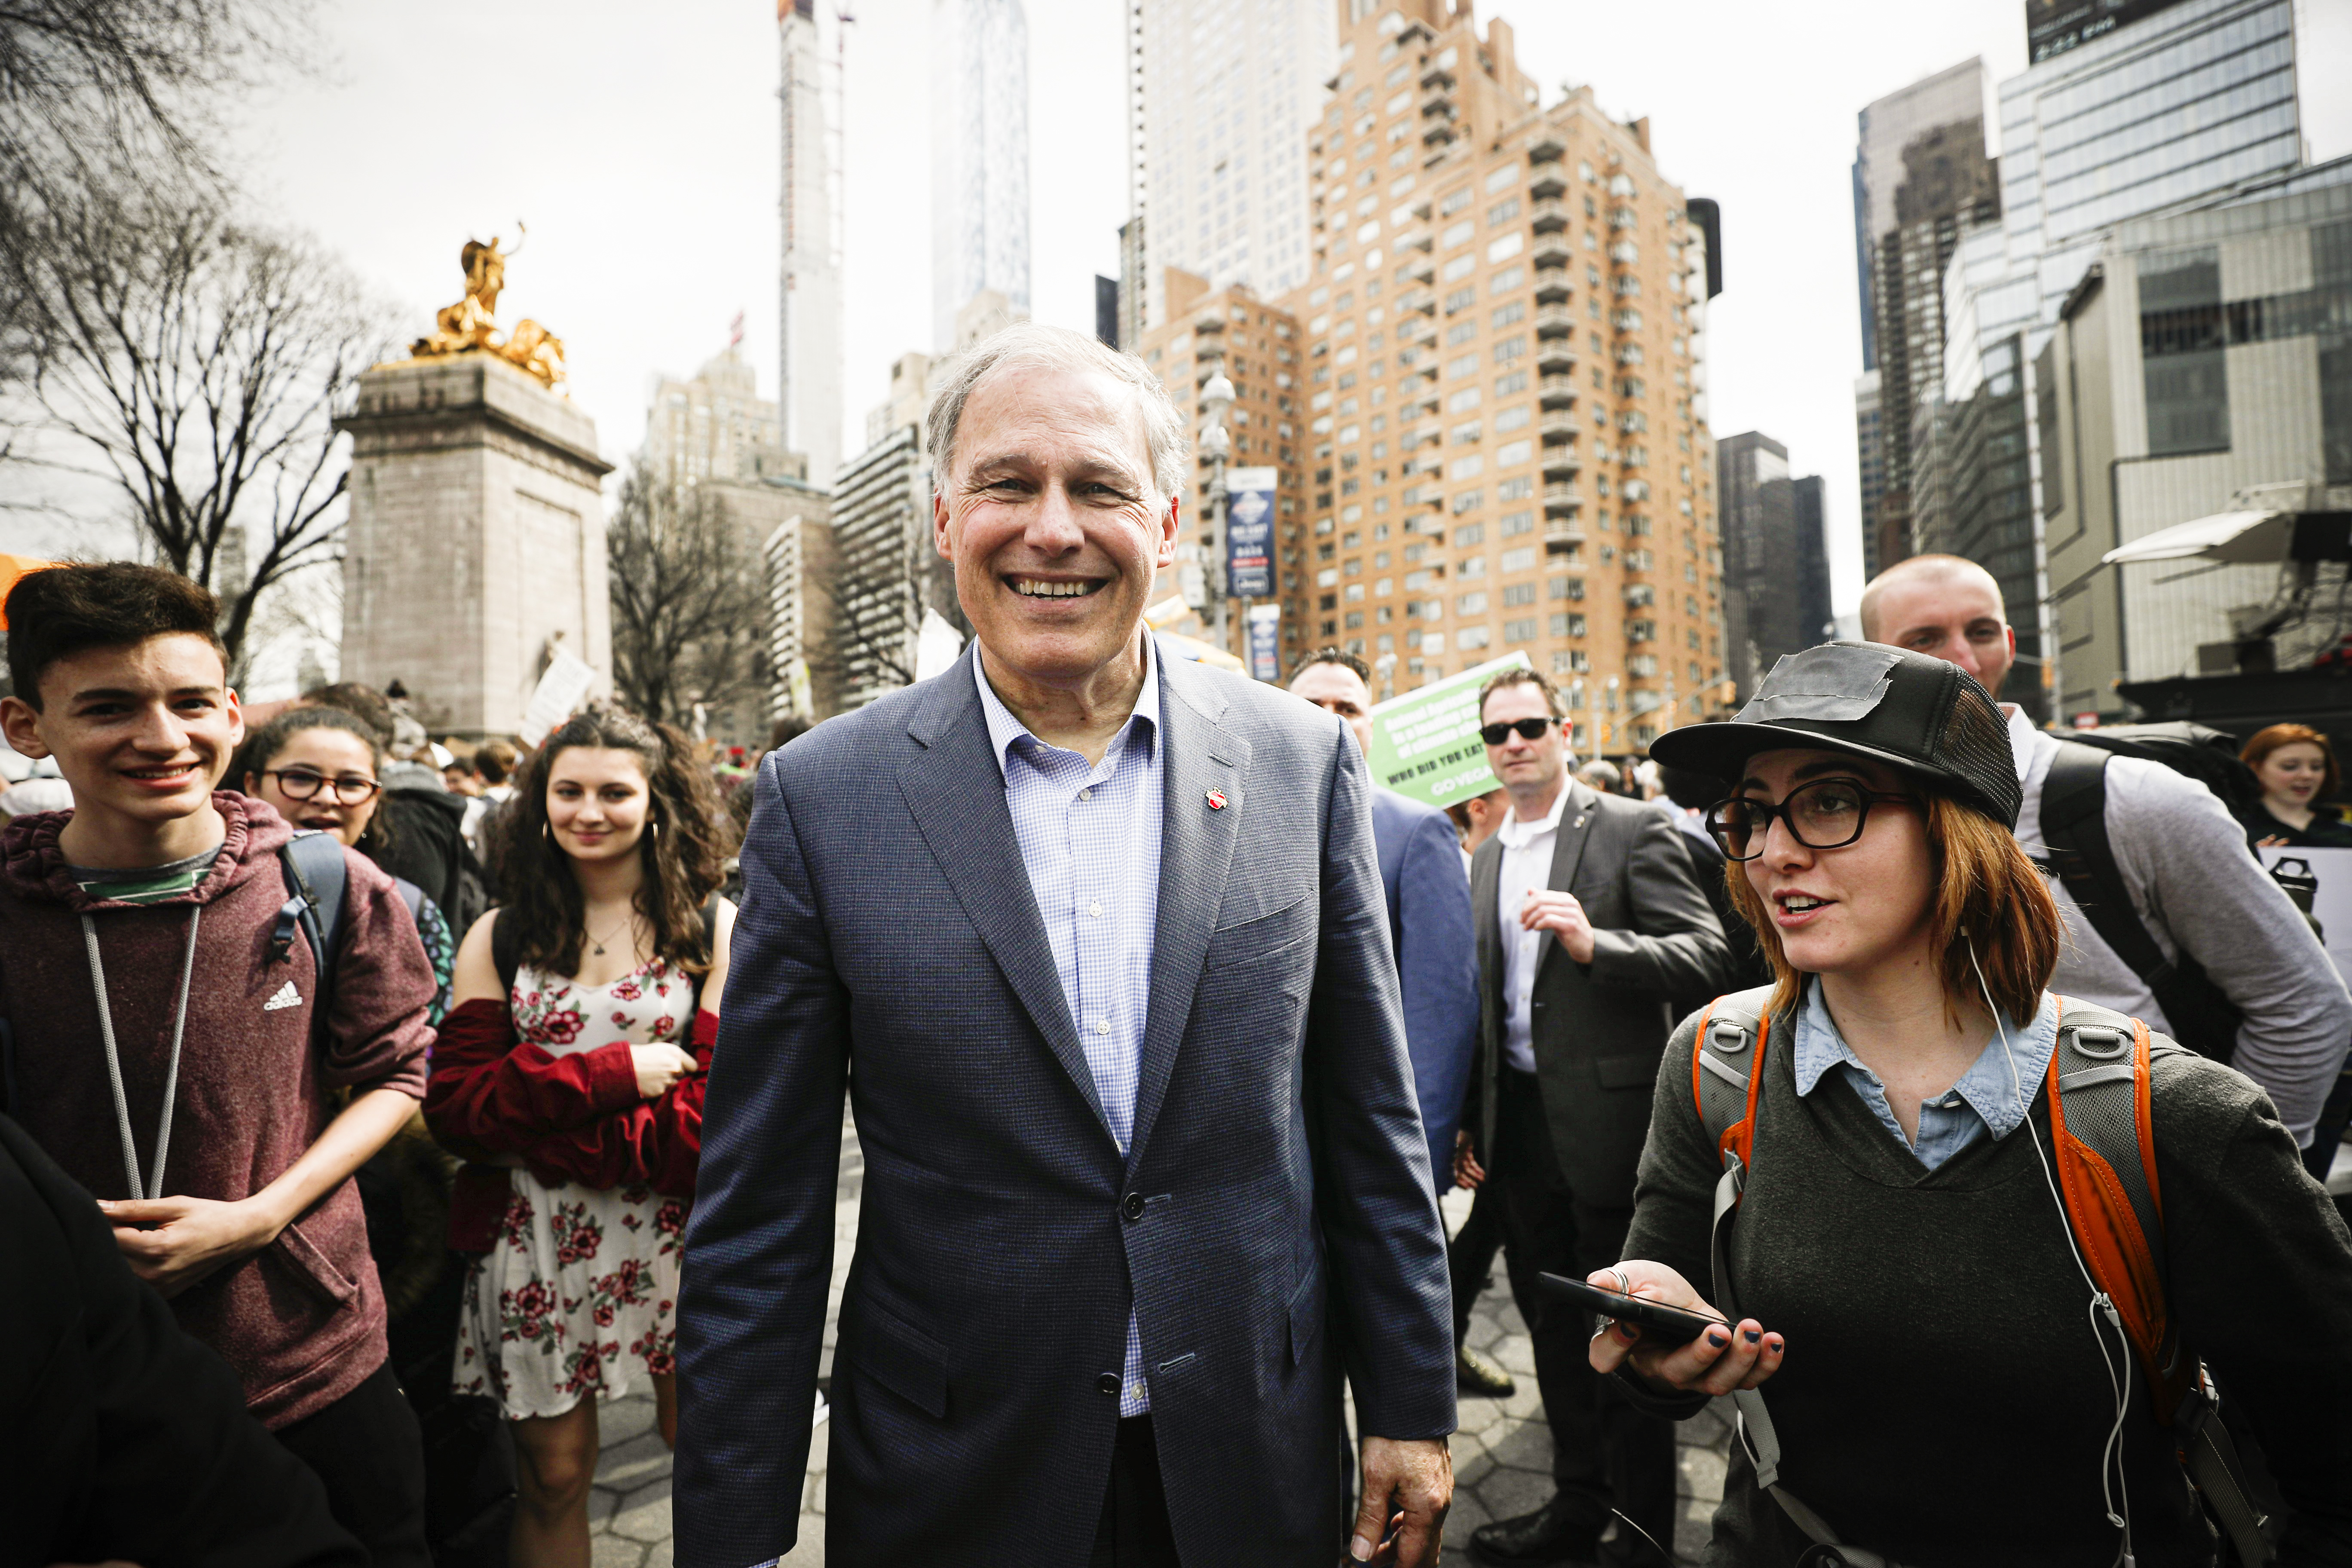 Former Democratic presidential candidate Washington Governor Jay Inslee walking with a group of students down a New York City street.